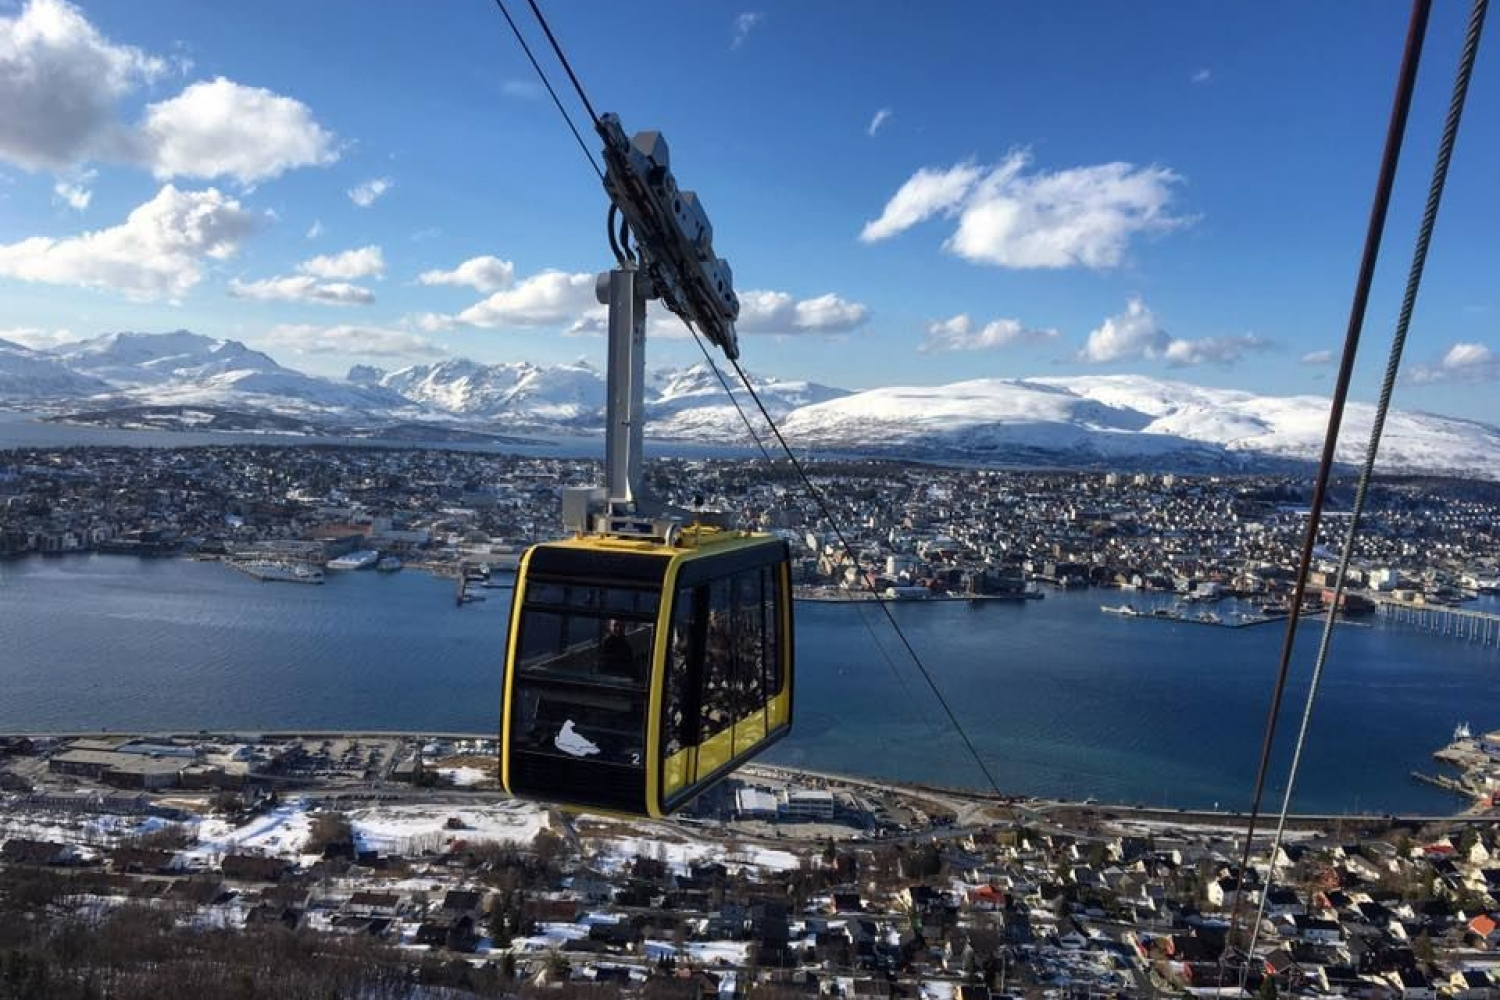 A cable car on the way up to the top